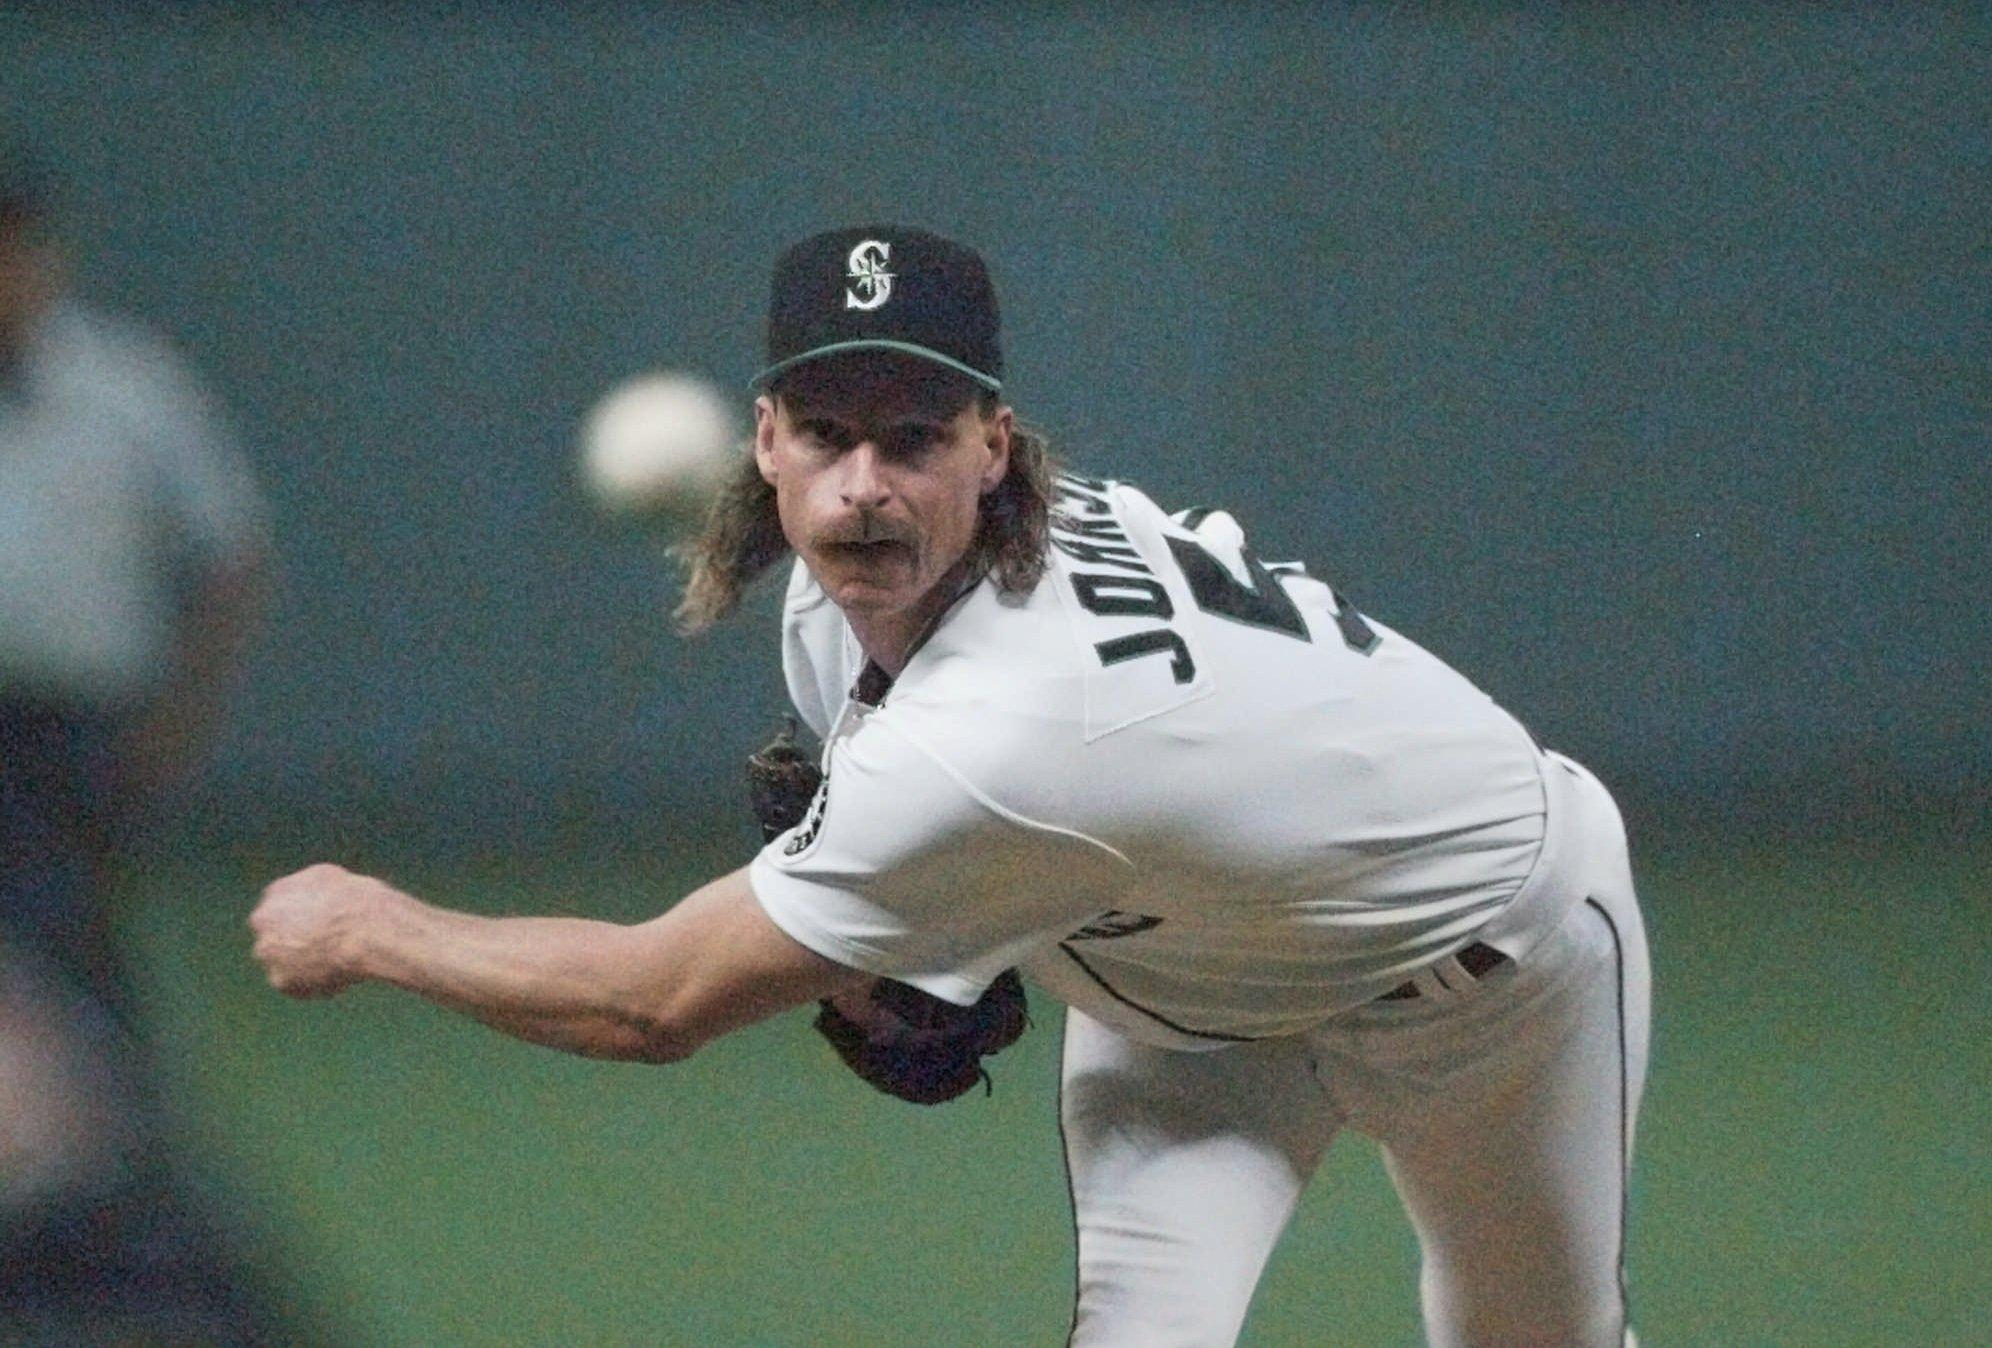 Randy Johnson leads the 2015 hall of fame ballot.  Photo (AP Photo/   Elaine Thompson) via seattlepi.com